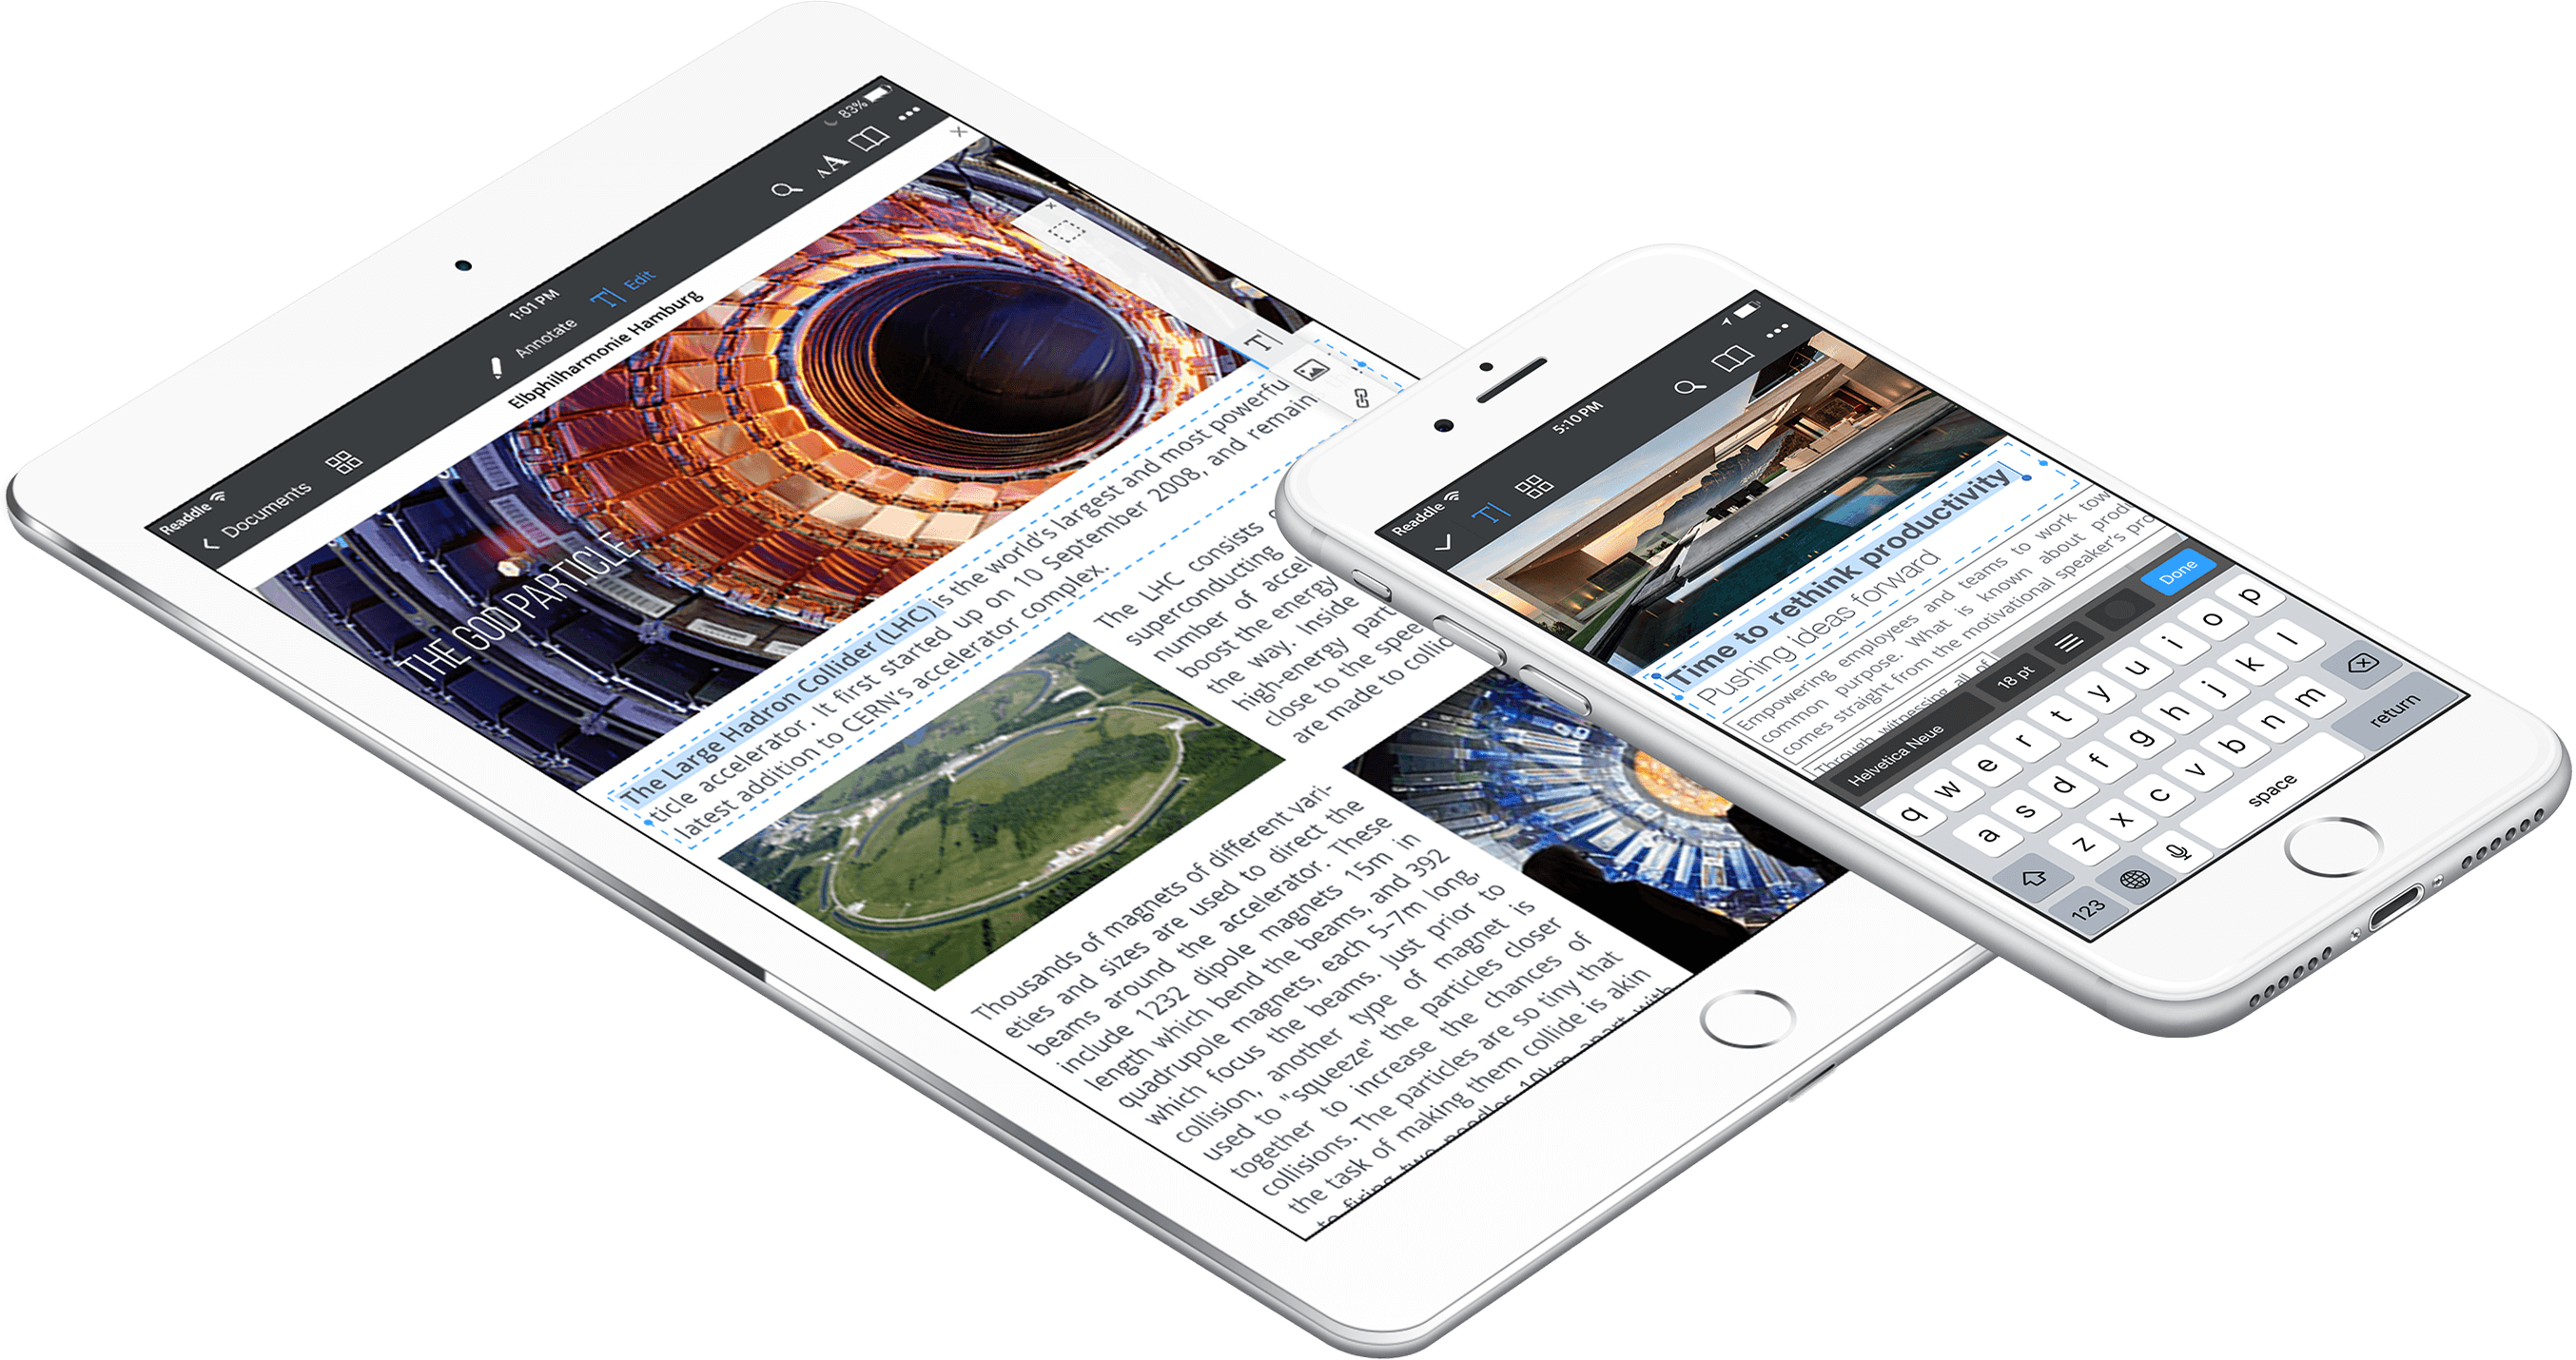 All This Is Possible With Pdf Expert 6 You Can Actually Edit Existing Pdf  Text, Add And Replace Images And Even Add Links On Your Iphone And Ipad